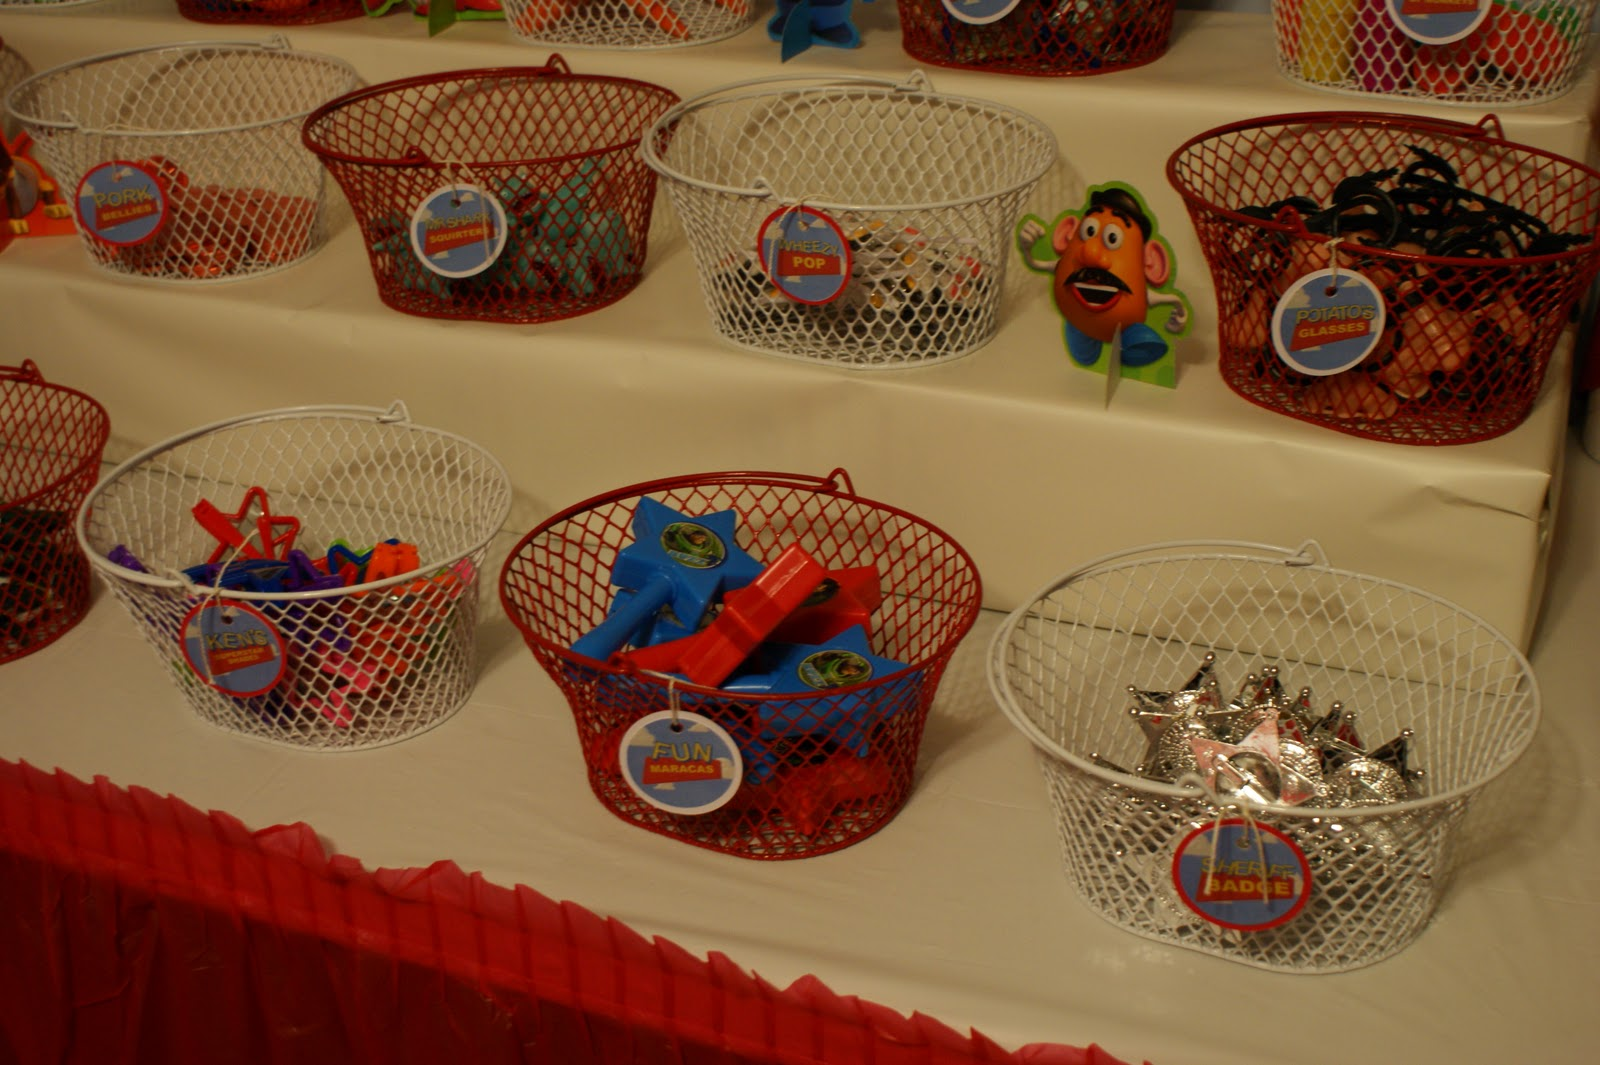 Games To Play At Toy Story Birthday Party : Pin by denise ollanketo on atm toy story